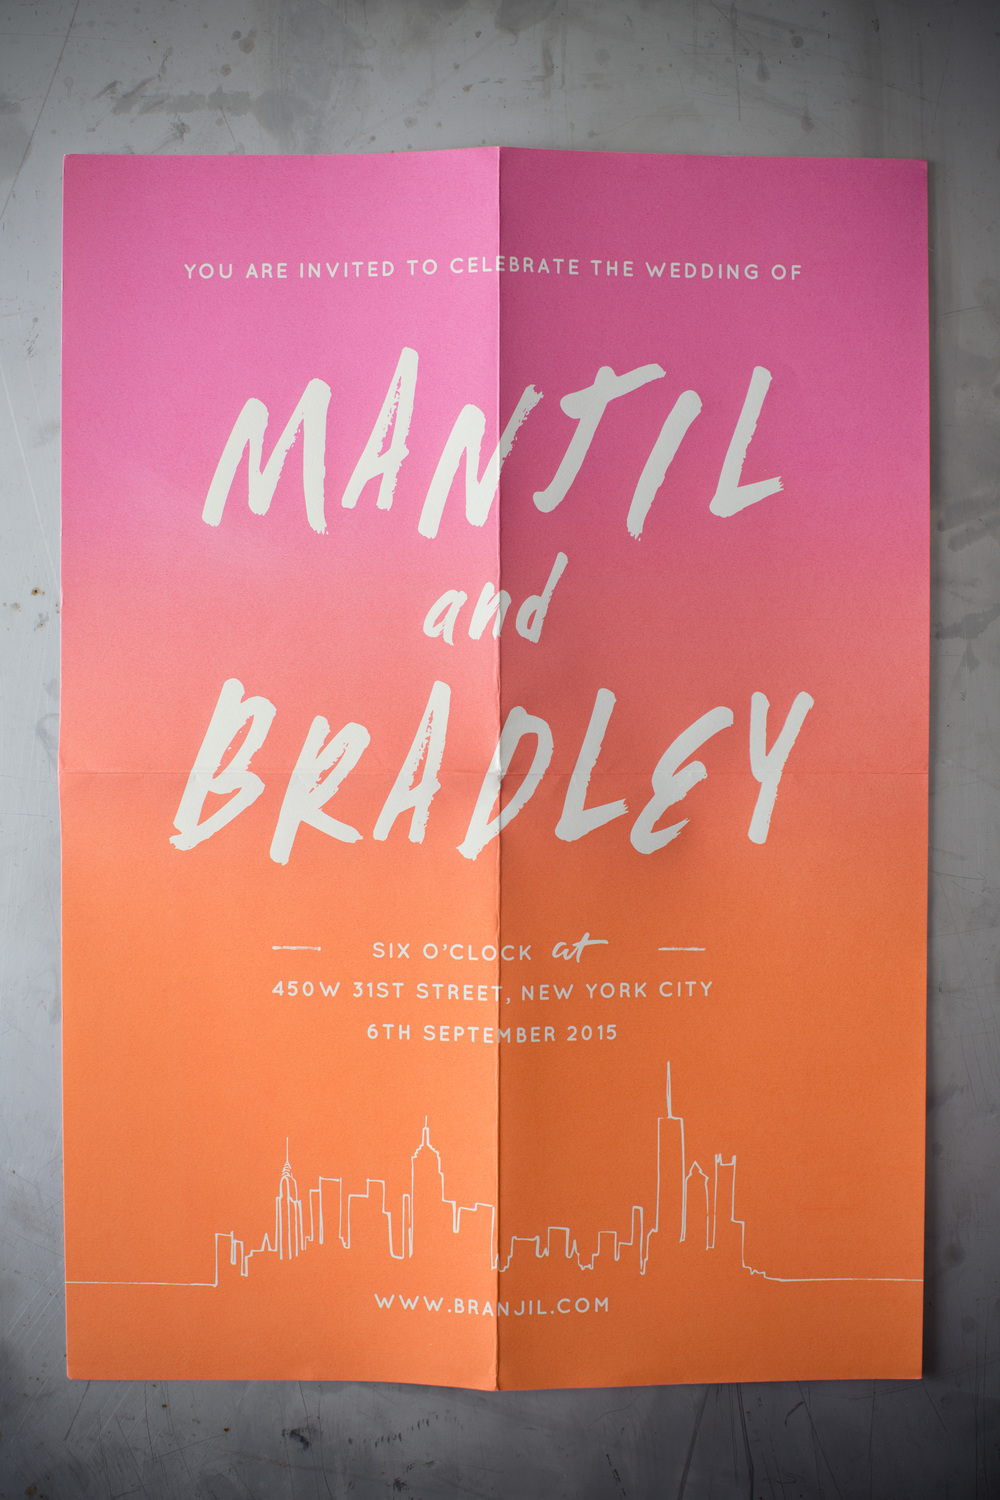 For the formal invitations Manjil and Brad requested a large screenprinted poster; this was so exciting to work on for us, we approached the design as if it was a gig / film poster and hopefully their loved ones will have them pinned up for years to come - a great example of breaking the norm!